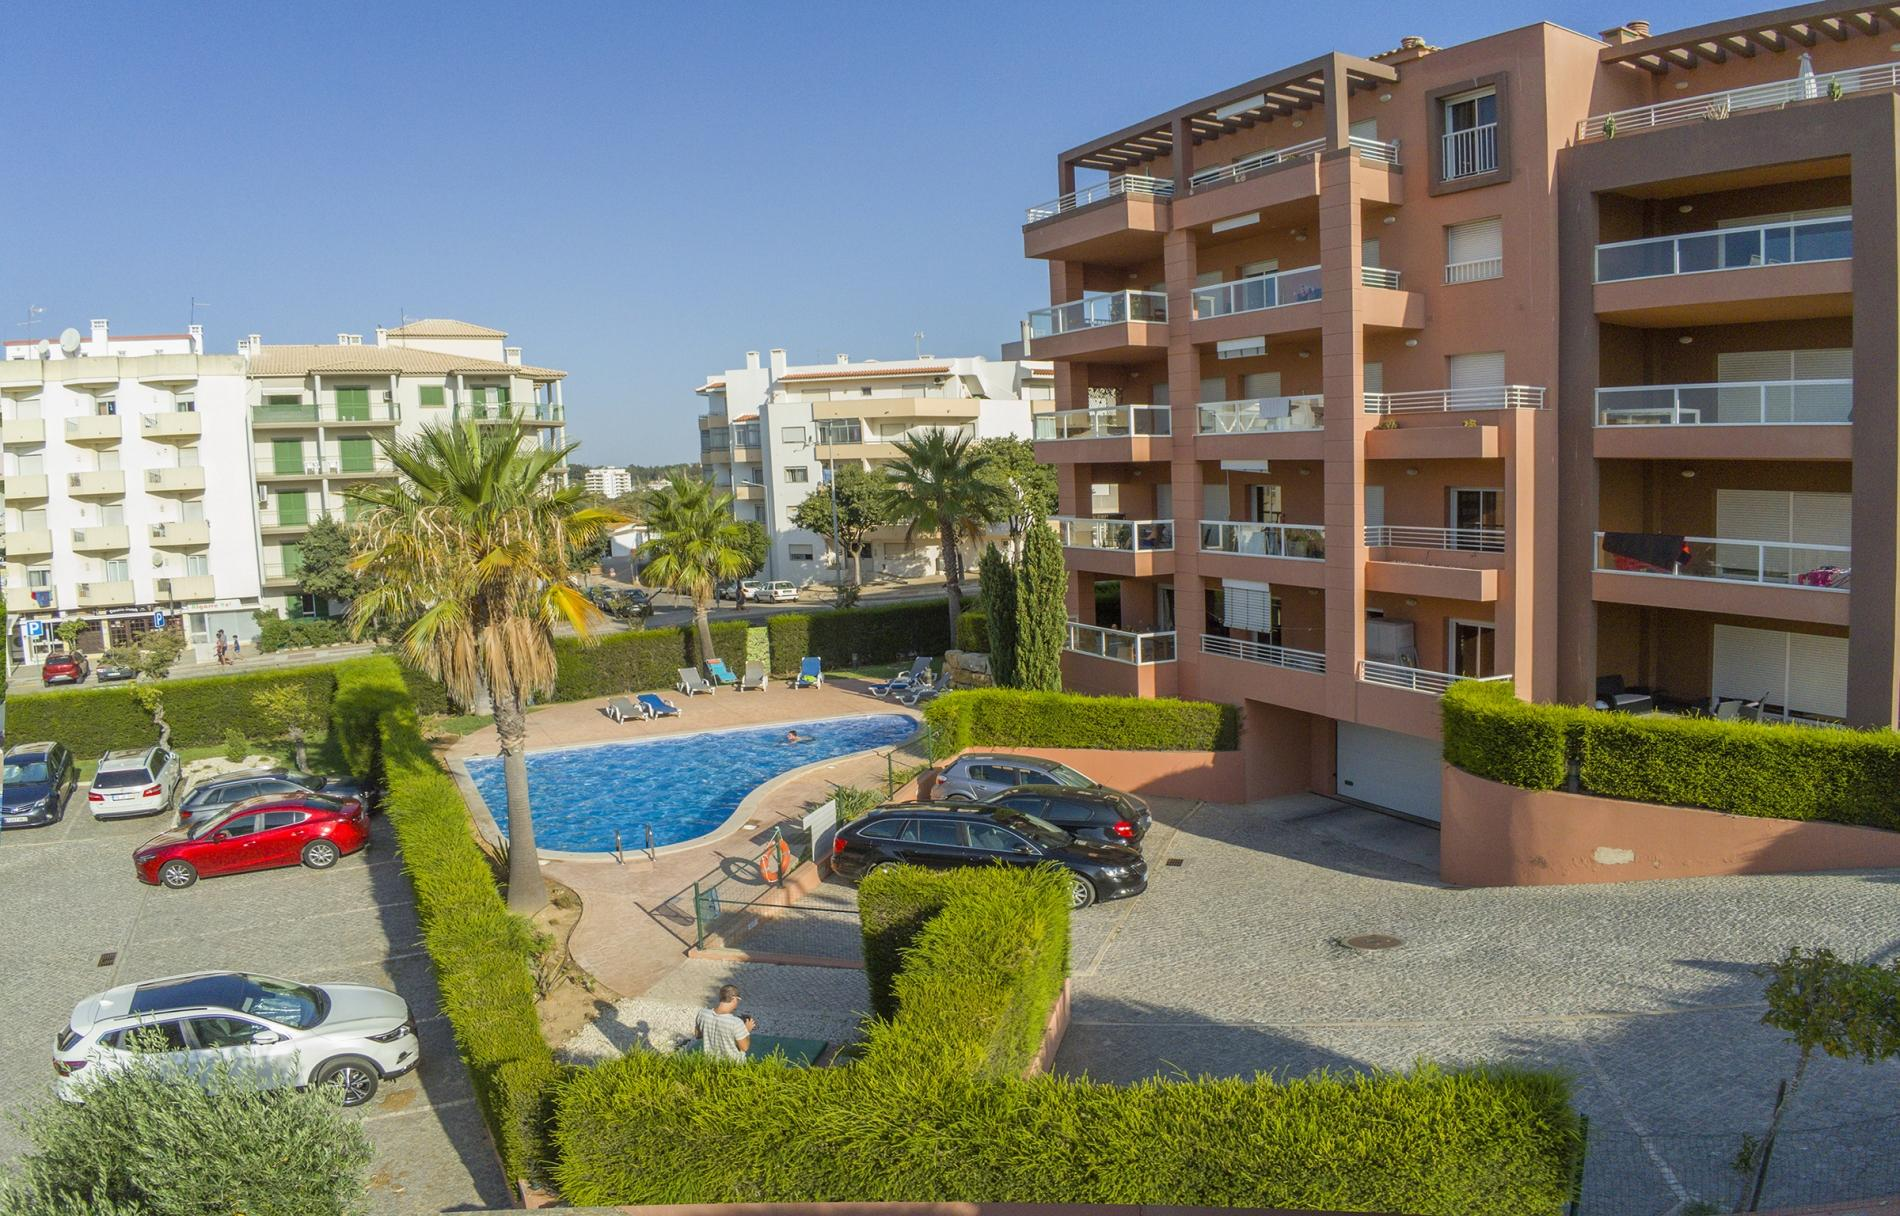 Apartment B02 - Fantastic Apartment with Pool Almost on the Sandy Beach  photo 20866923